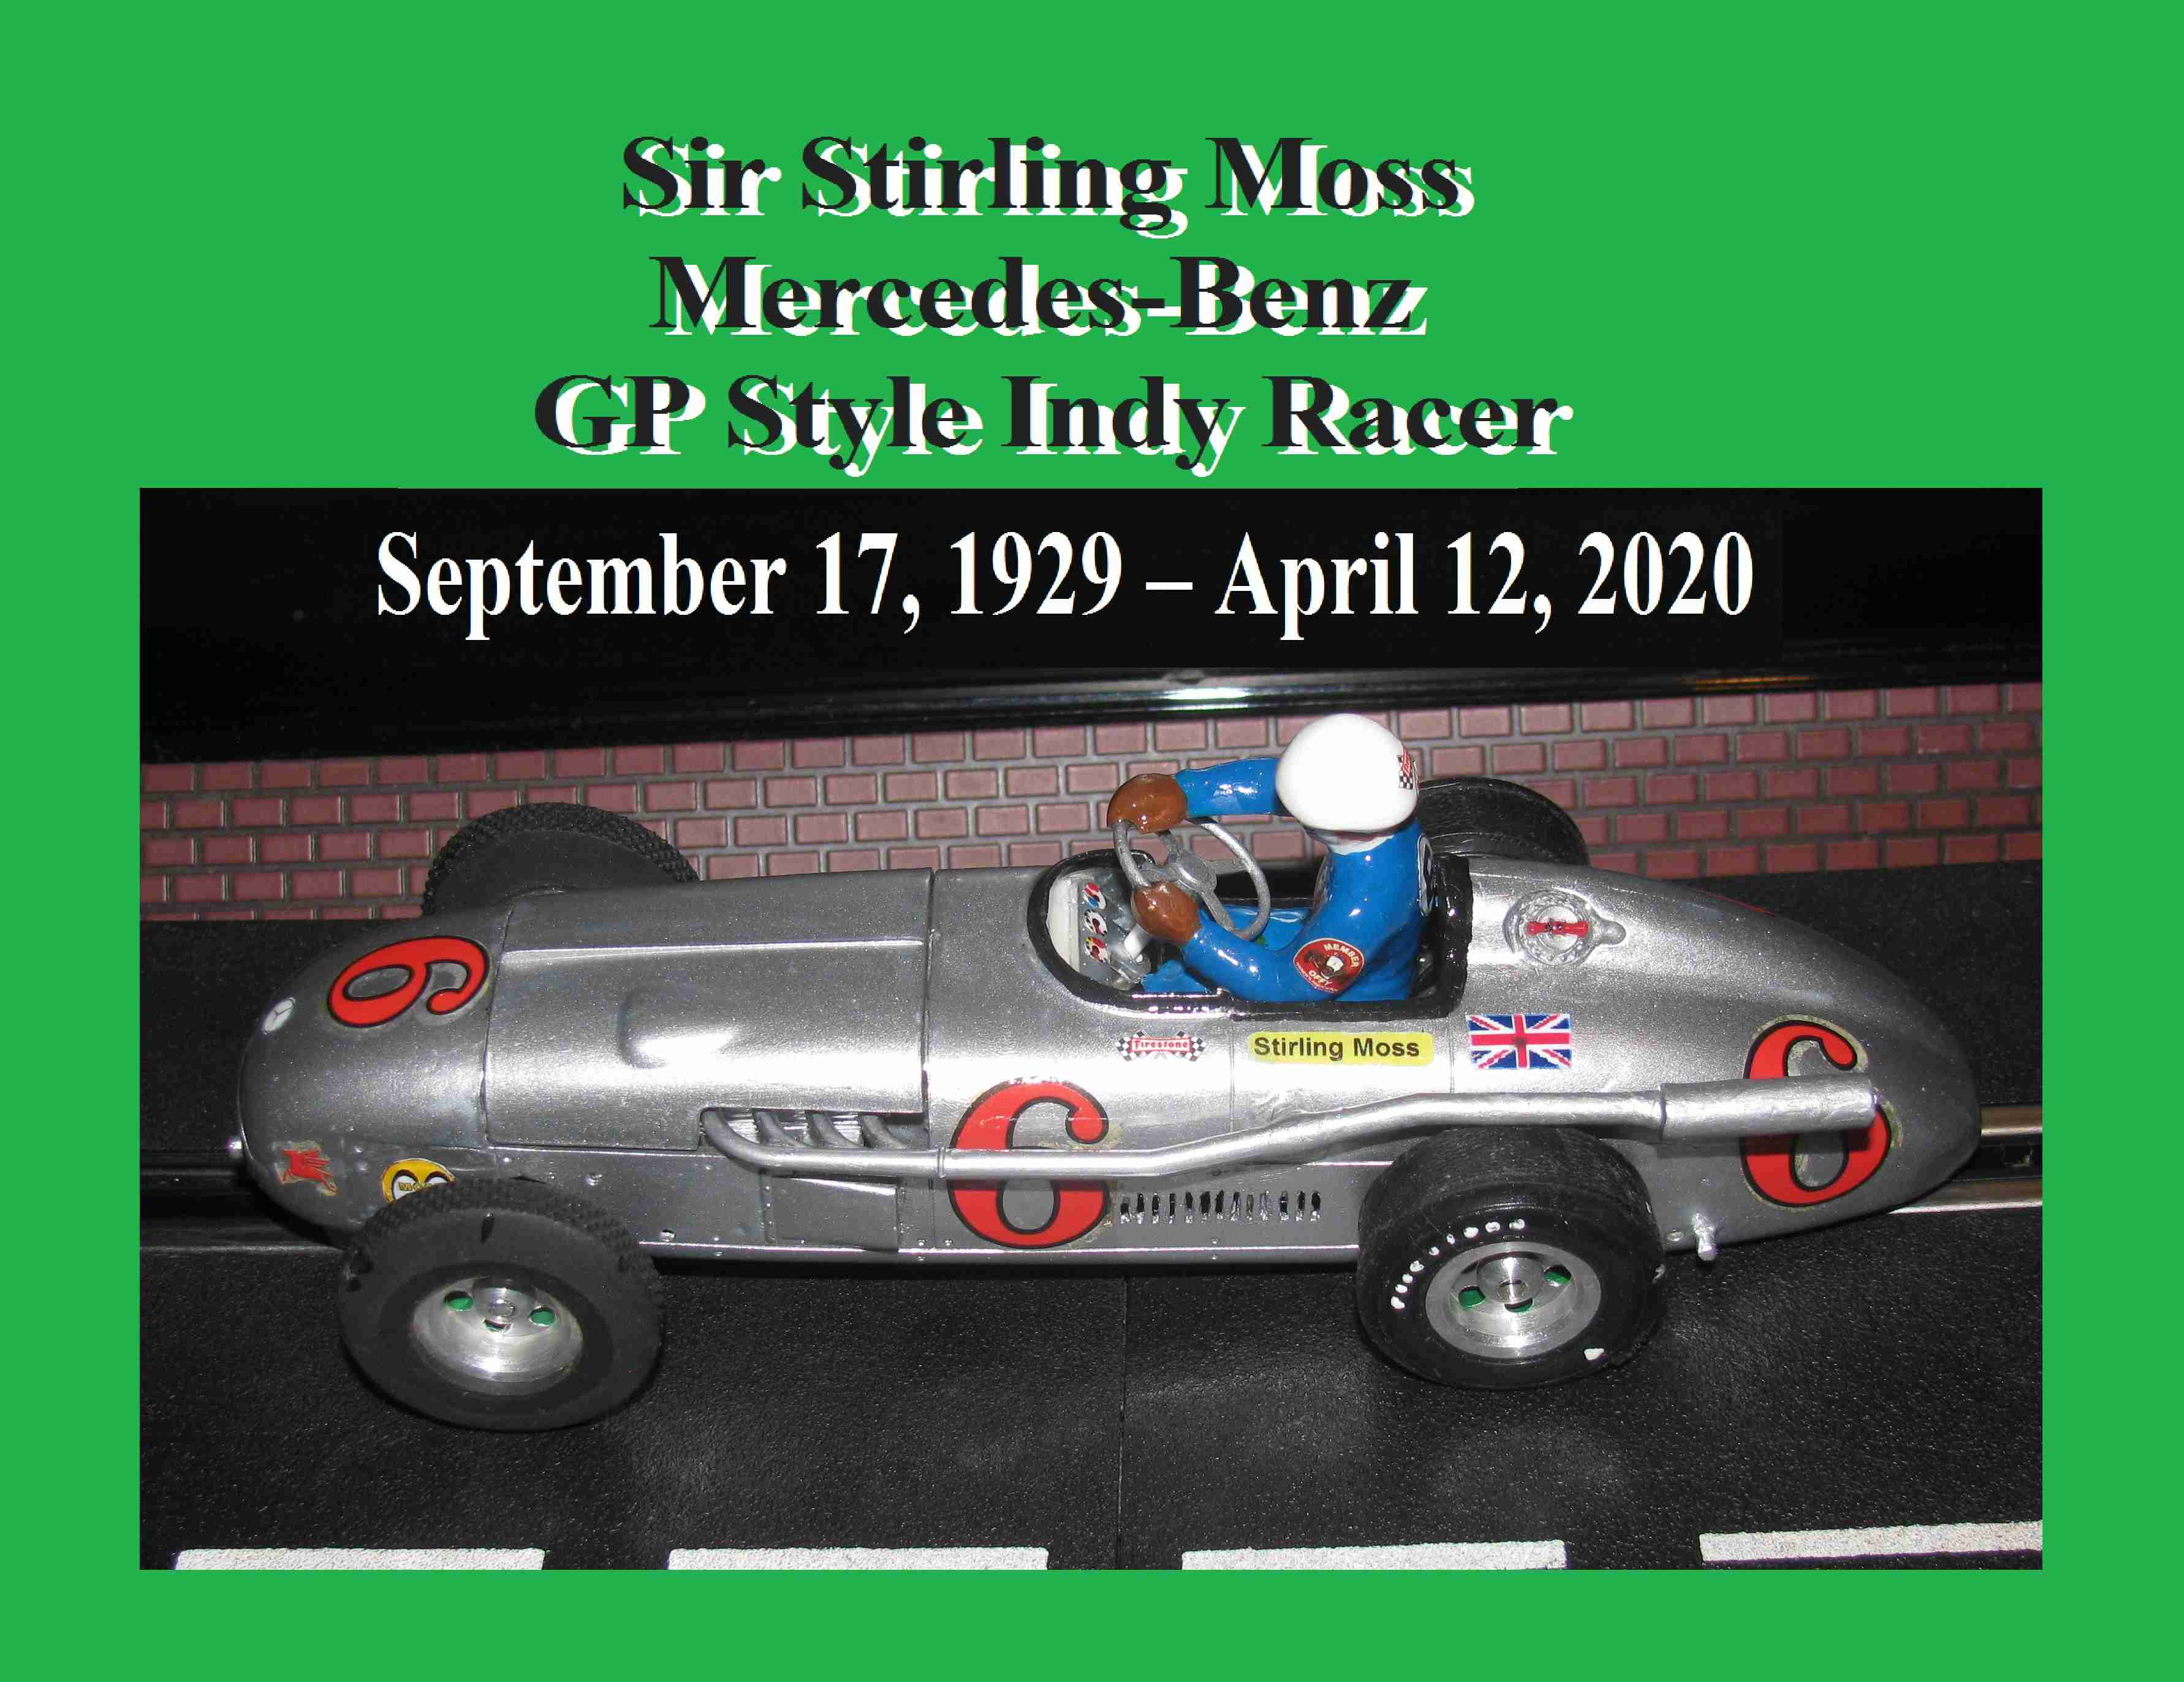 * Super Sale * Sir Stirling Moss Mercedes-Benz GP Style Indy Racer Slot Car 1:24 Scale, INCLUDES: High Quality Display Stand